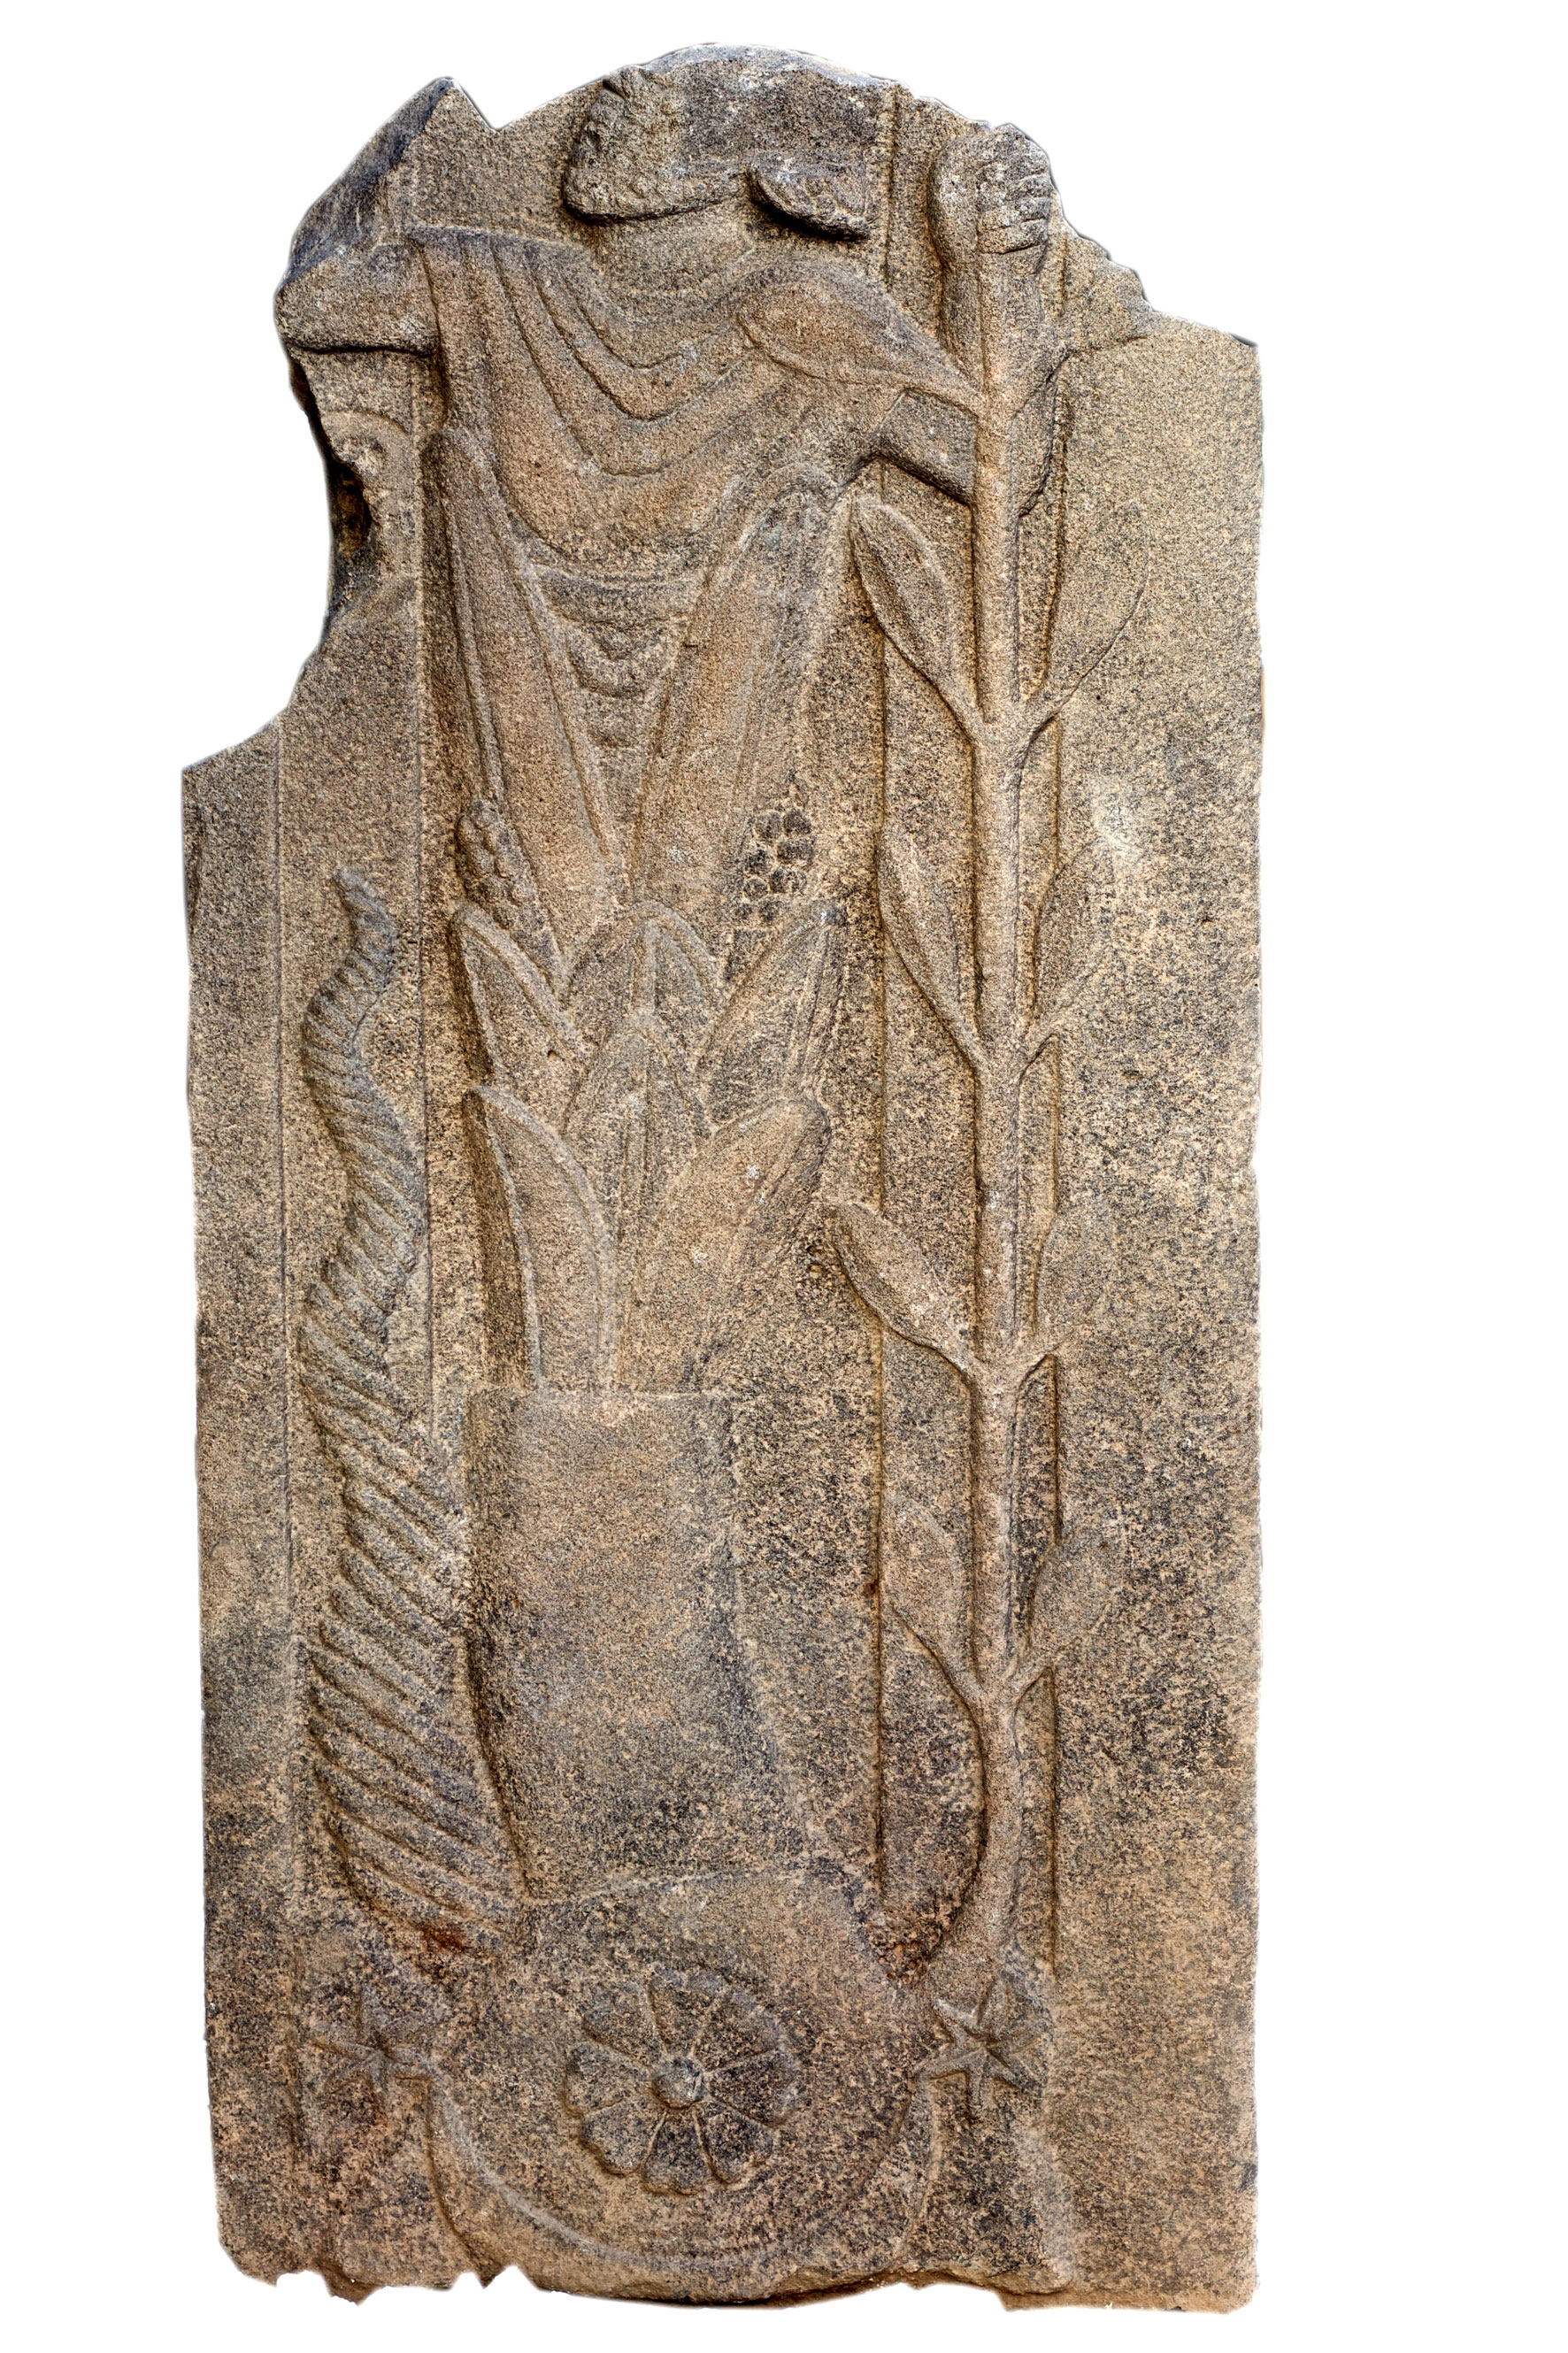 An unknown Roman god was recently unearthed at a sanctuary in southeast Turkey. The god, who is emerging from a plant, is depicted with both Near Eastern and Roman elements, and may have been a baal, or subdeity, of the temple's major god, Jupiter Dolichenus Credit: Peter Jülich